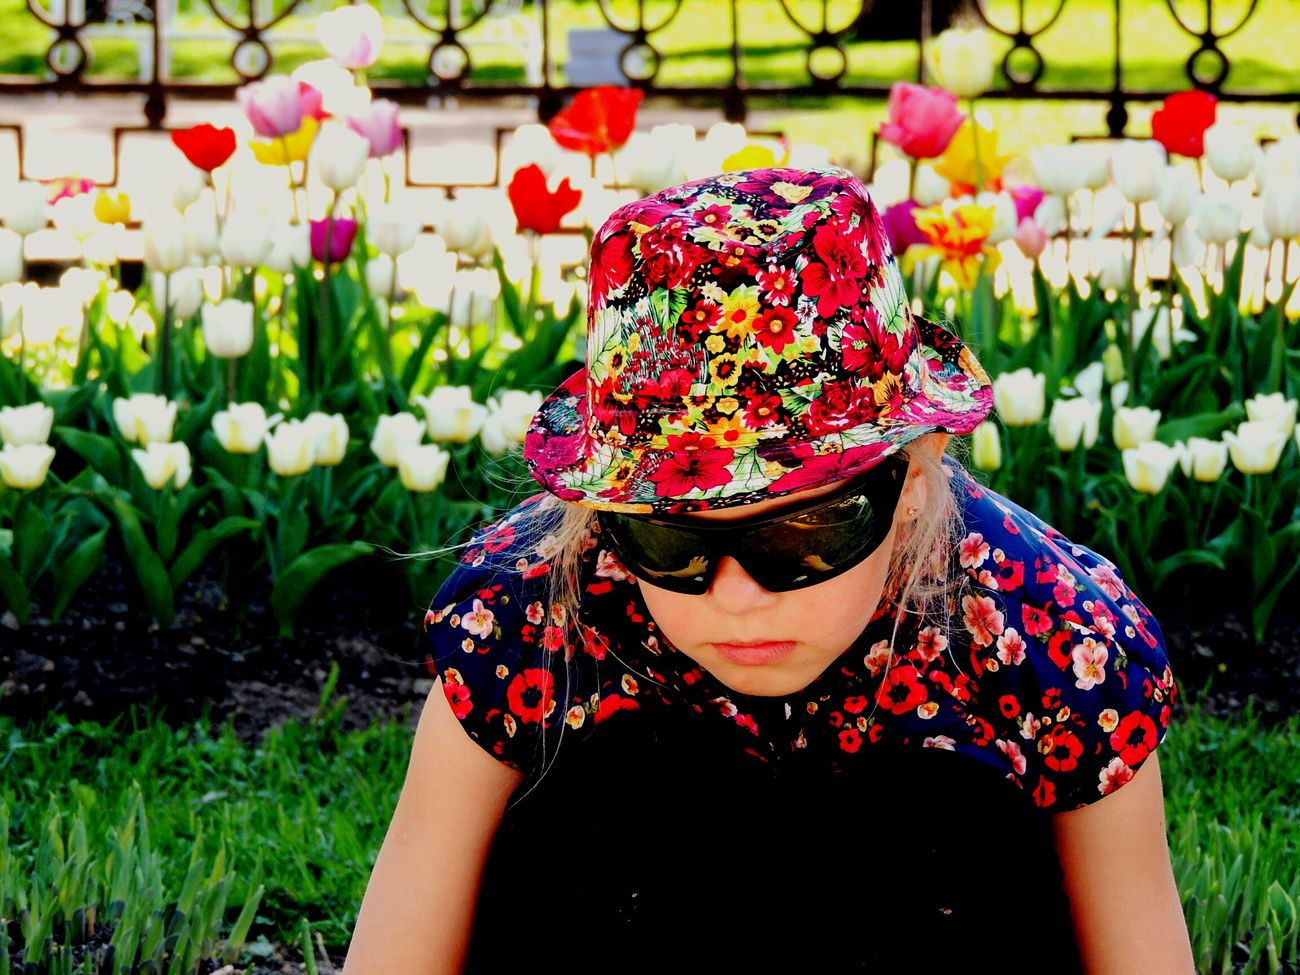 Garden Photography Hat Flowers Daughter Pushkin  Sankt-peterburg Walking Around Springtime Flowerbed The Outdoors - 2016 Eyeem Awards